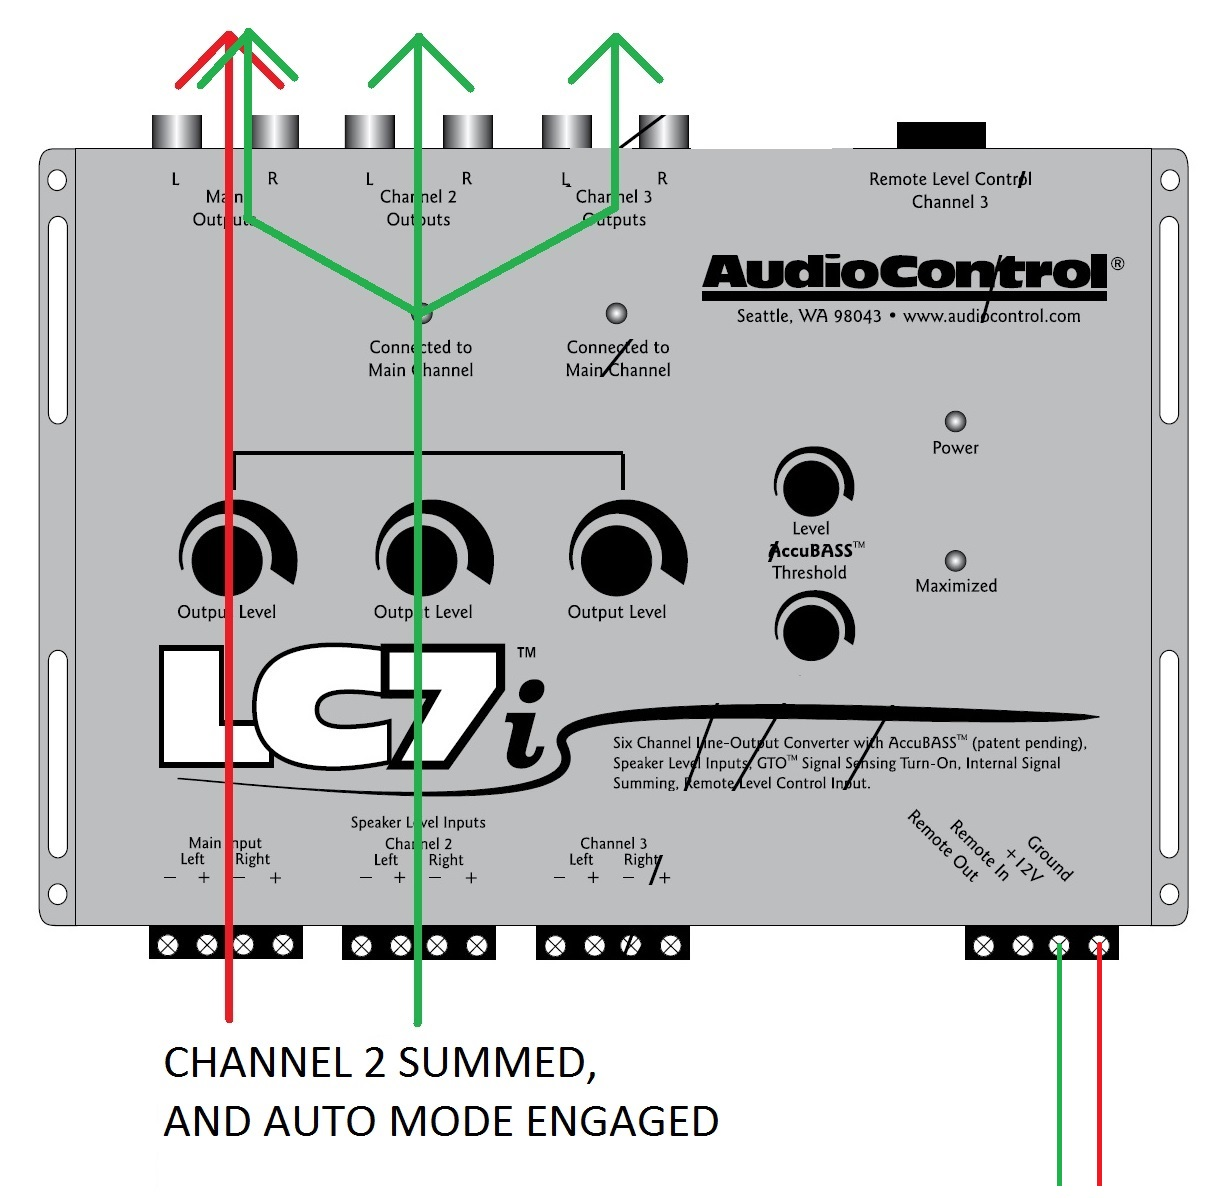 Epicenter Wiring Diagram in addition Audio Control Lc2i Wiring likewise Audio Control Lc6i Wiring Diagram as well Switchable Pre   Wiring Harness Diagram together with Audio Control Lc2i Wiring. on audiocontrol lc2i wiring diagram